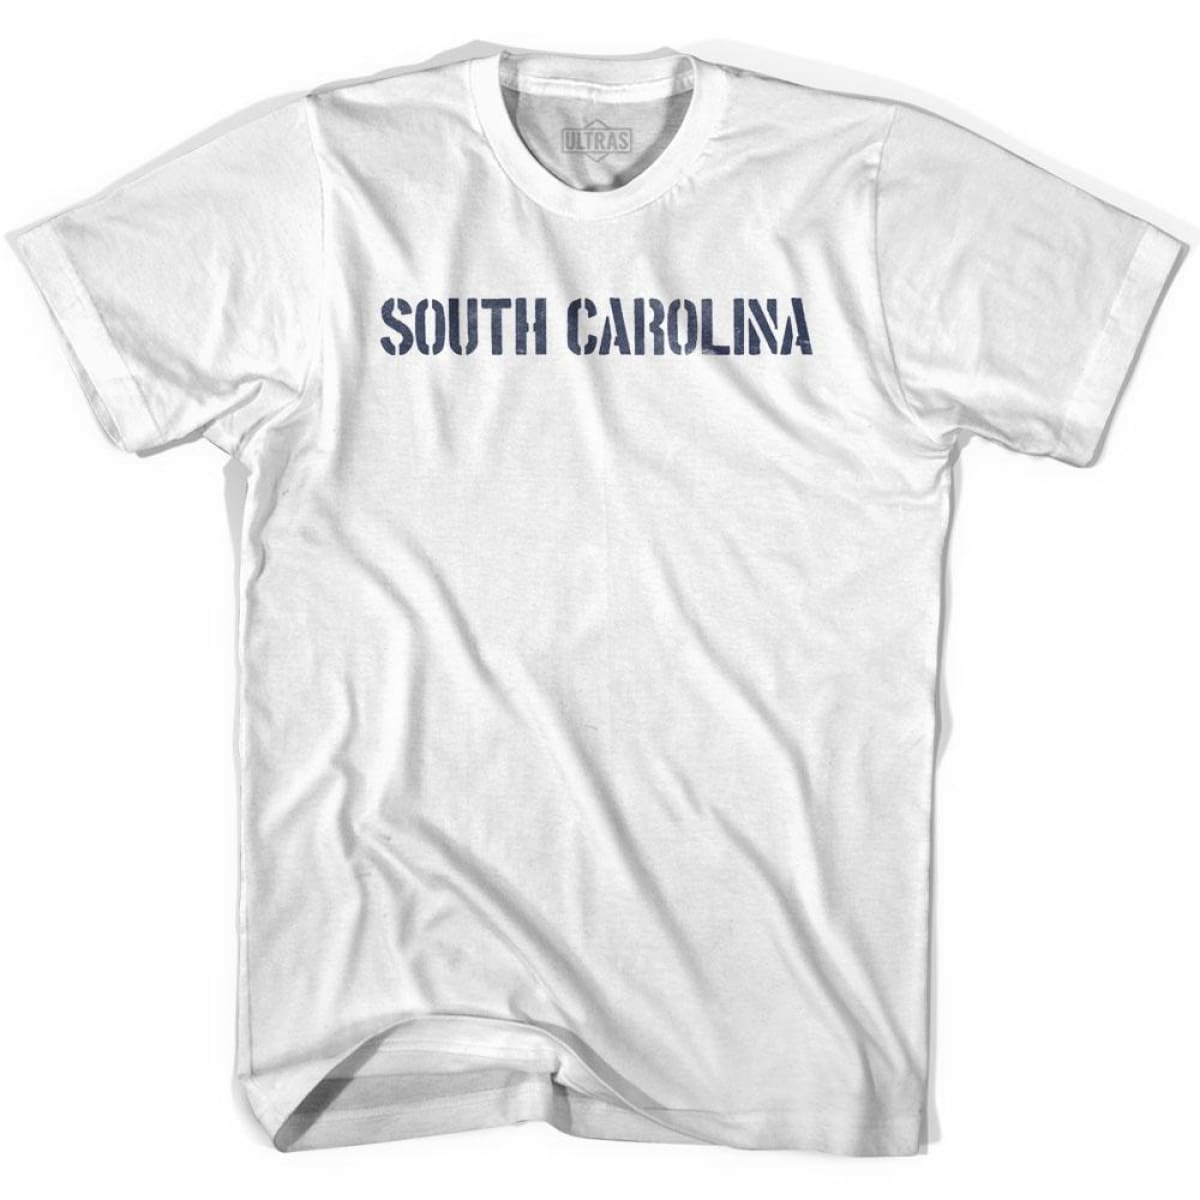 South Carolina State Stencil Adult Cotton T-shirt - White / Adult Small - Stencil State